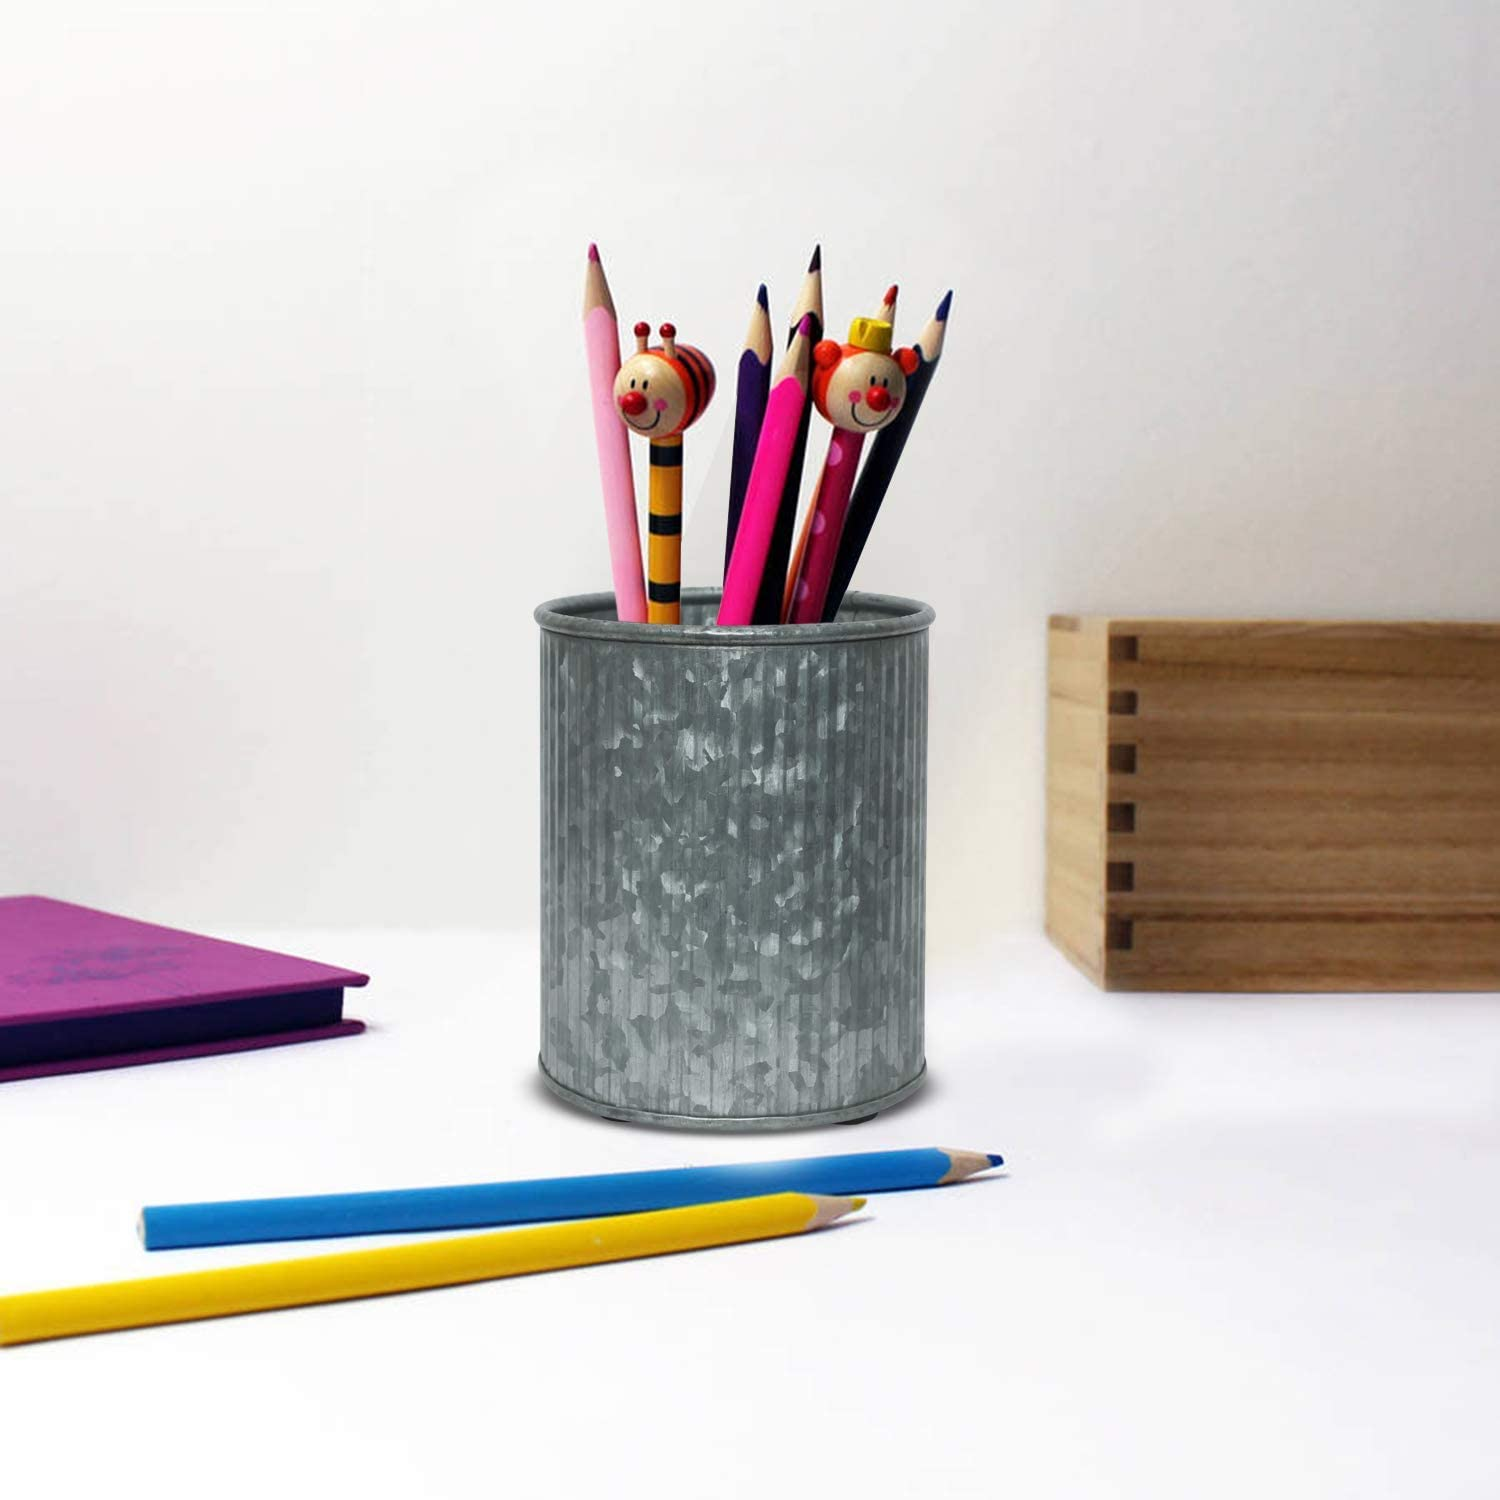 Today Deal Shaniya's Design Metal Pencil Holder, Pen Holder, Utensil Holder, Makeup Brush Holder Storage Made of Galvanized 4x4x5 Inch.